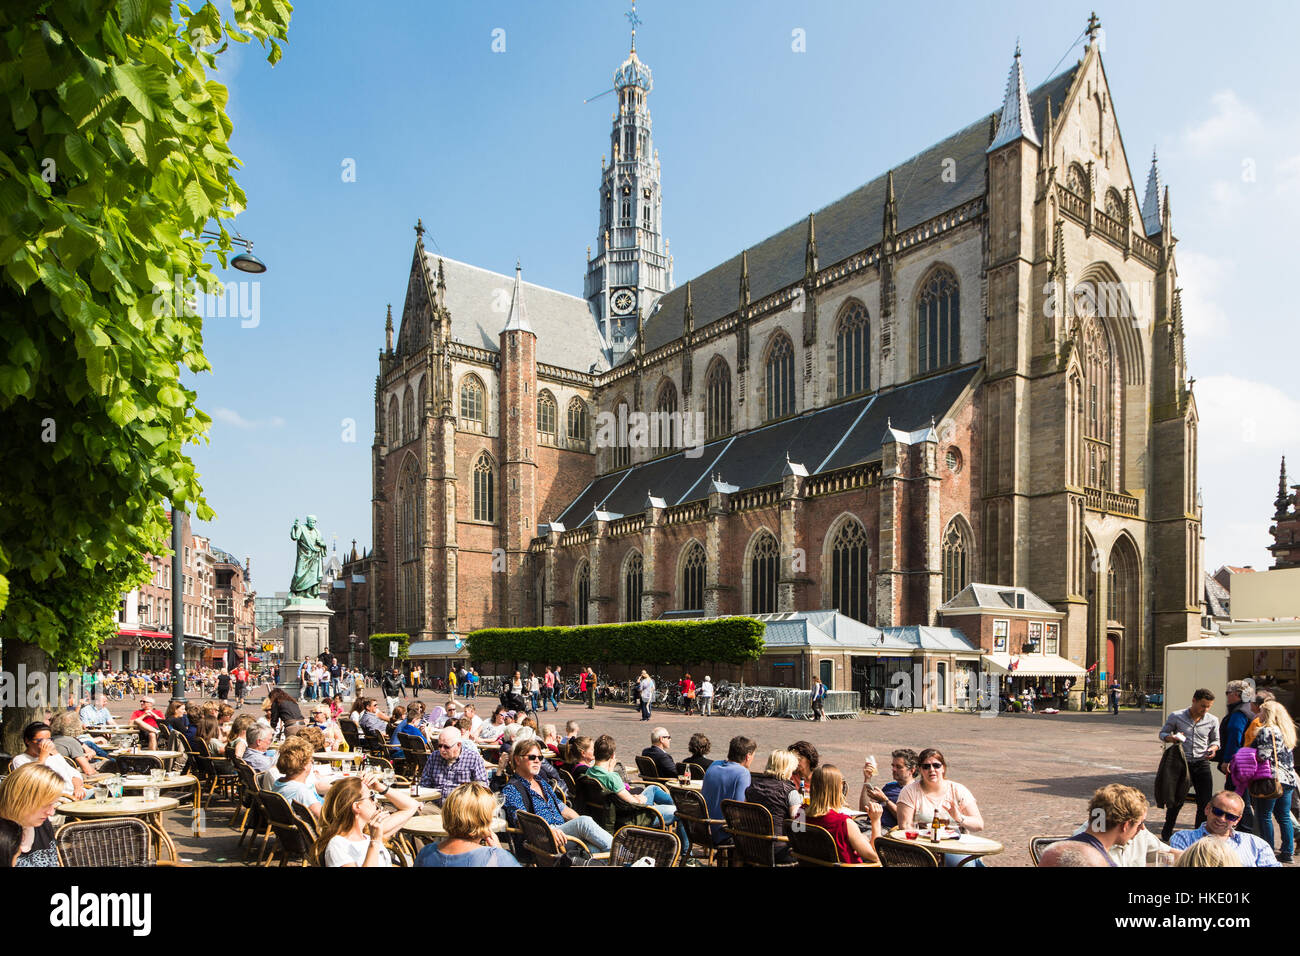 HAARLEM, NETHERLANDS - MAY 27, 2016: People enjoy drinks on a cafe terrace on the Grote Markt square in the center - Stock Image